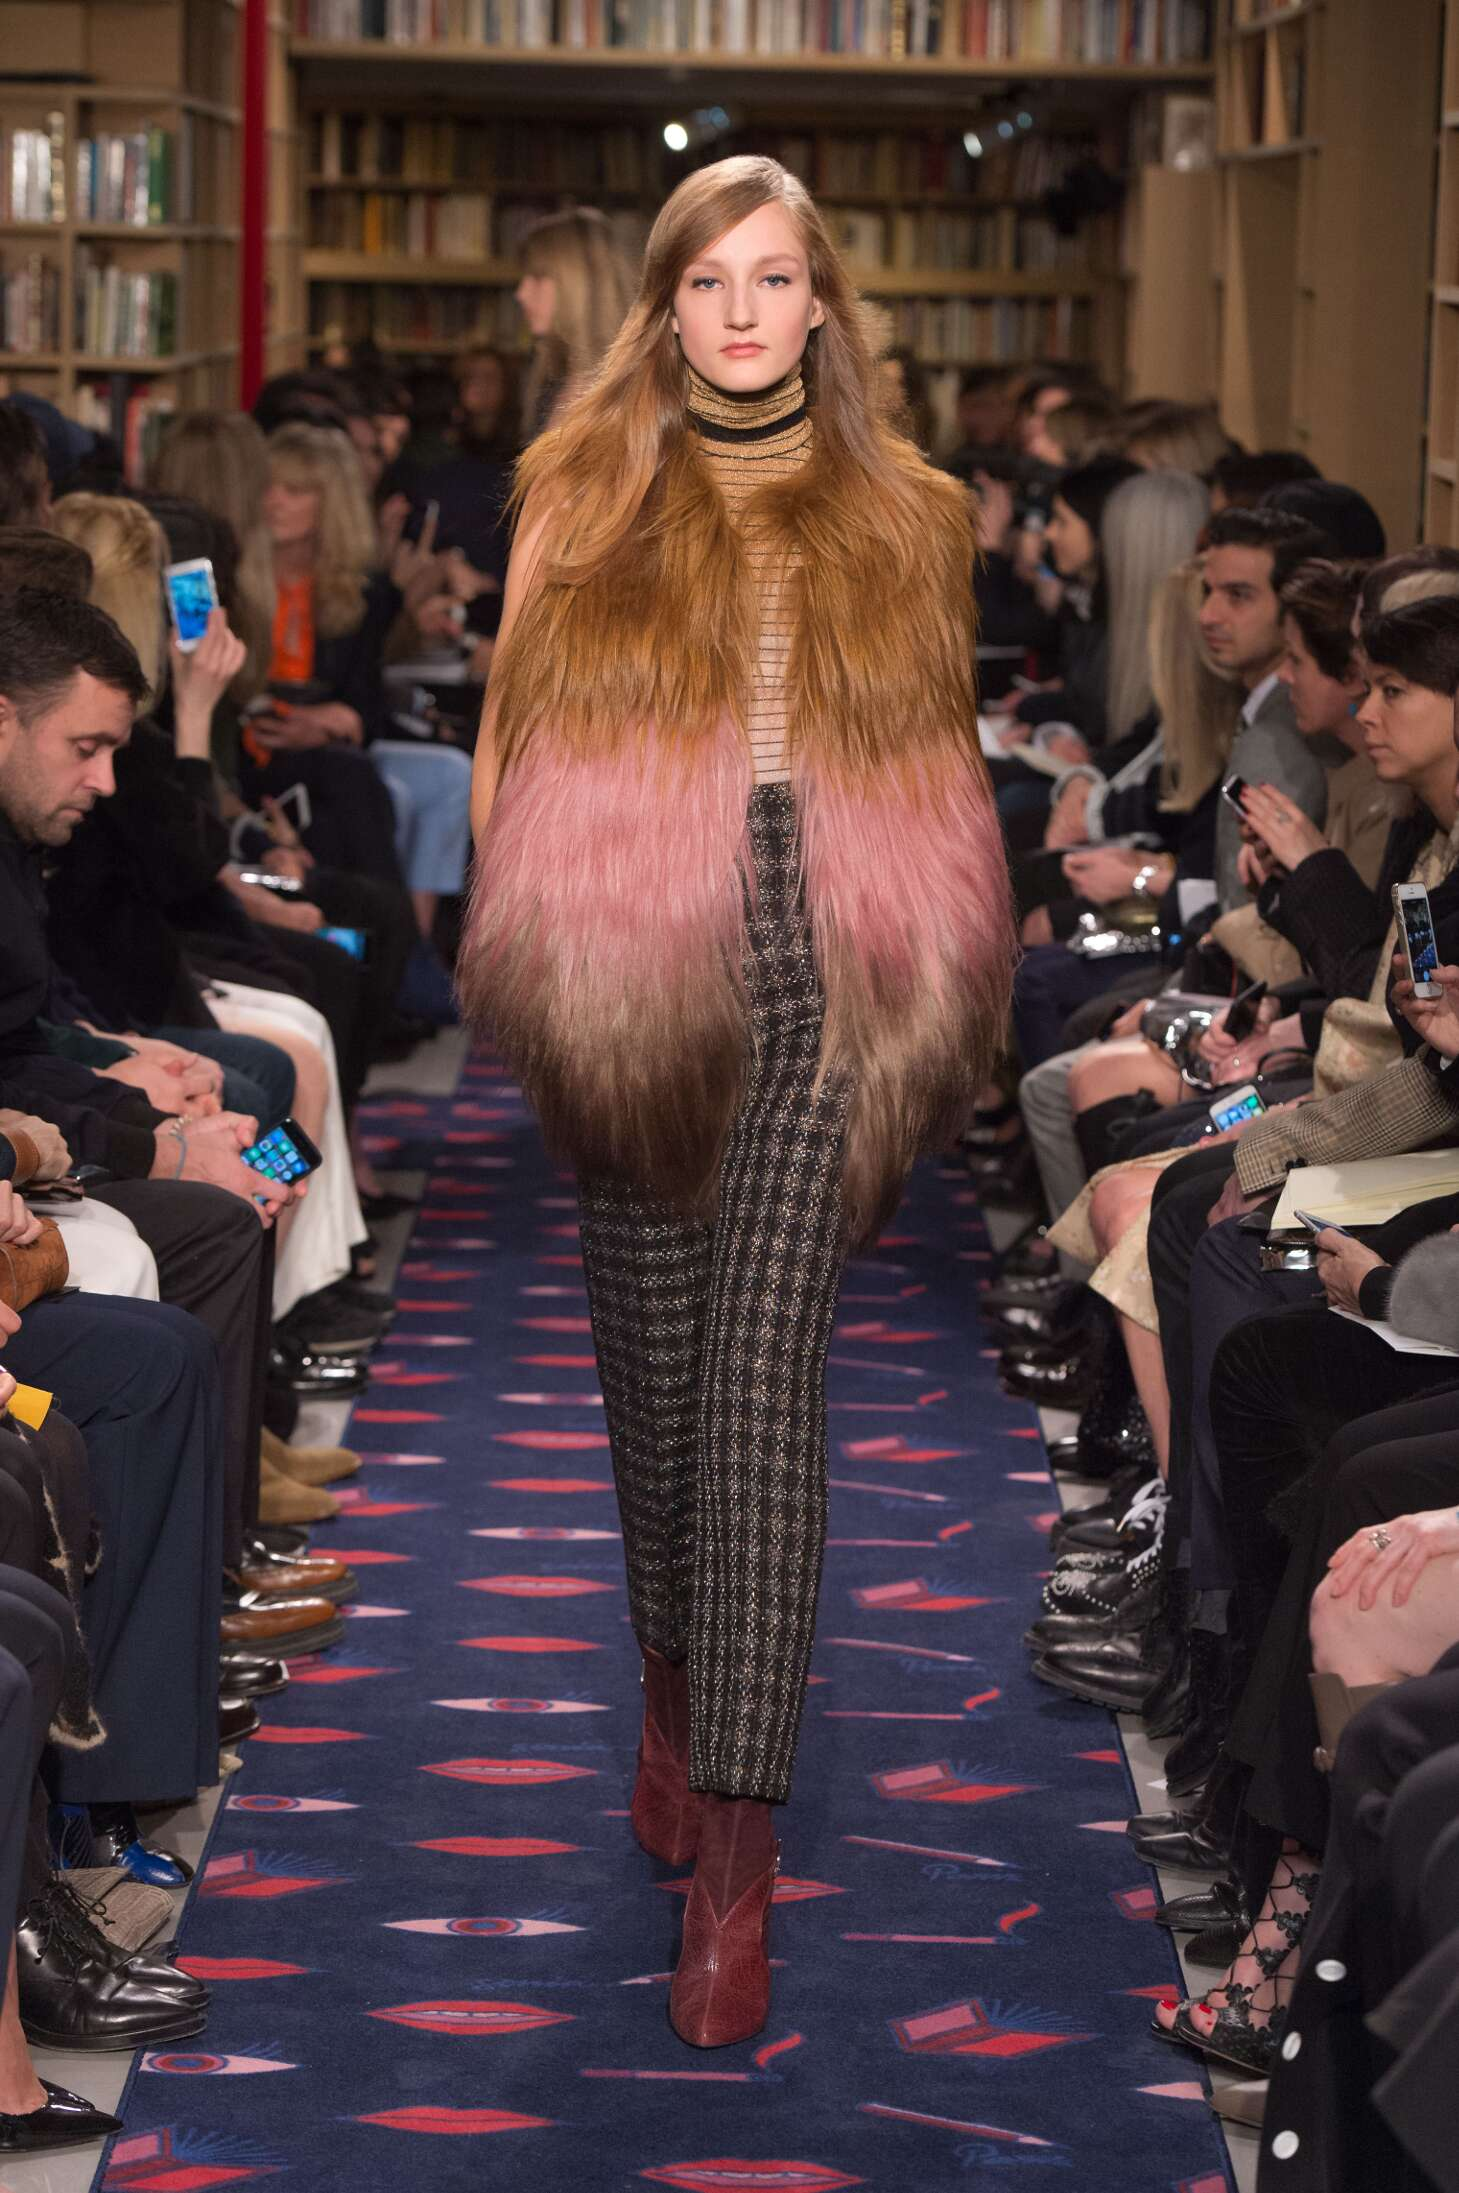 Sonia Rykiel Collection Fall 2015 Catwalk